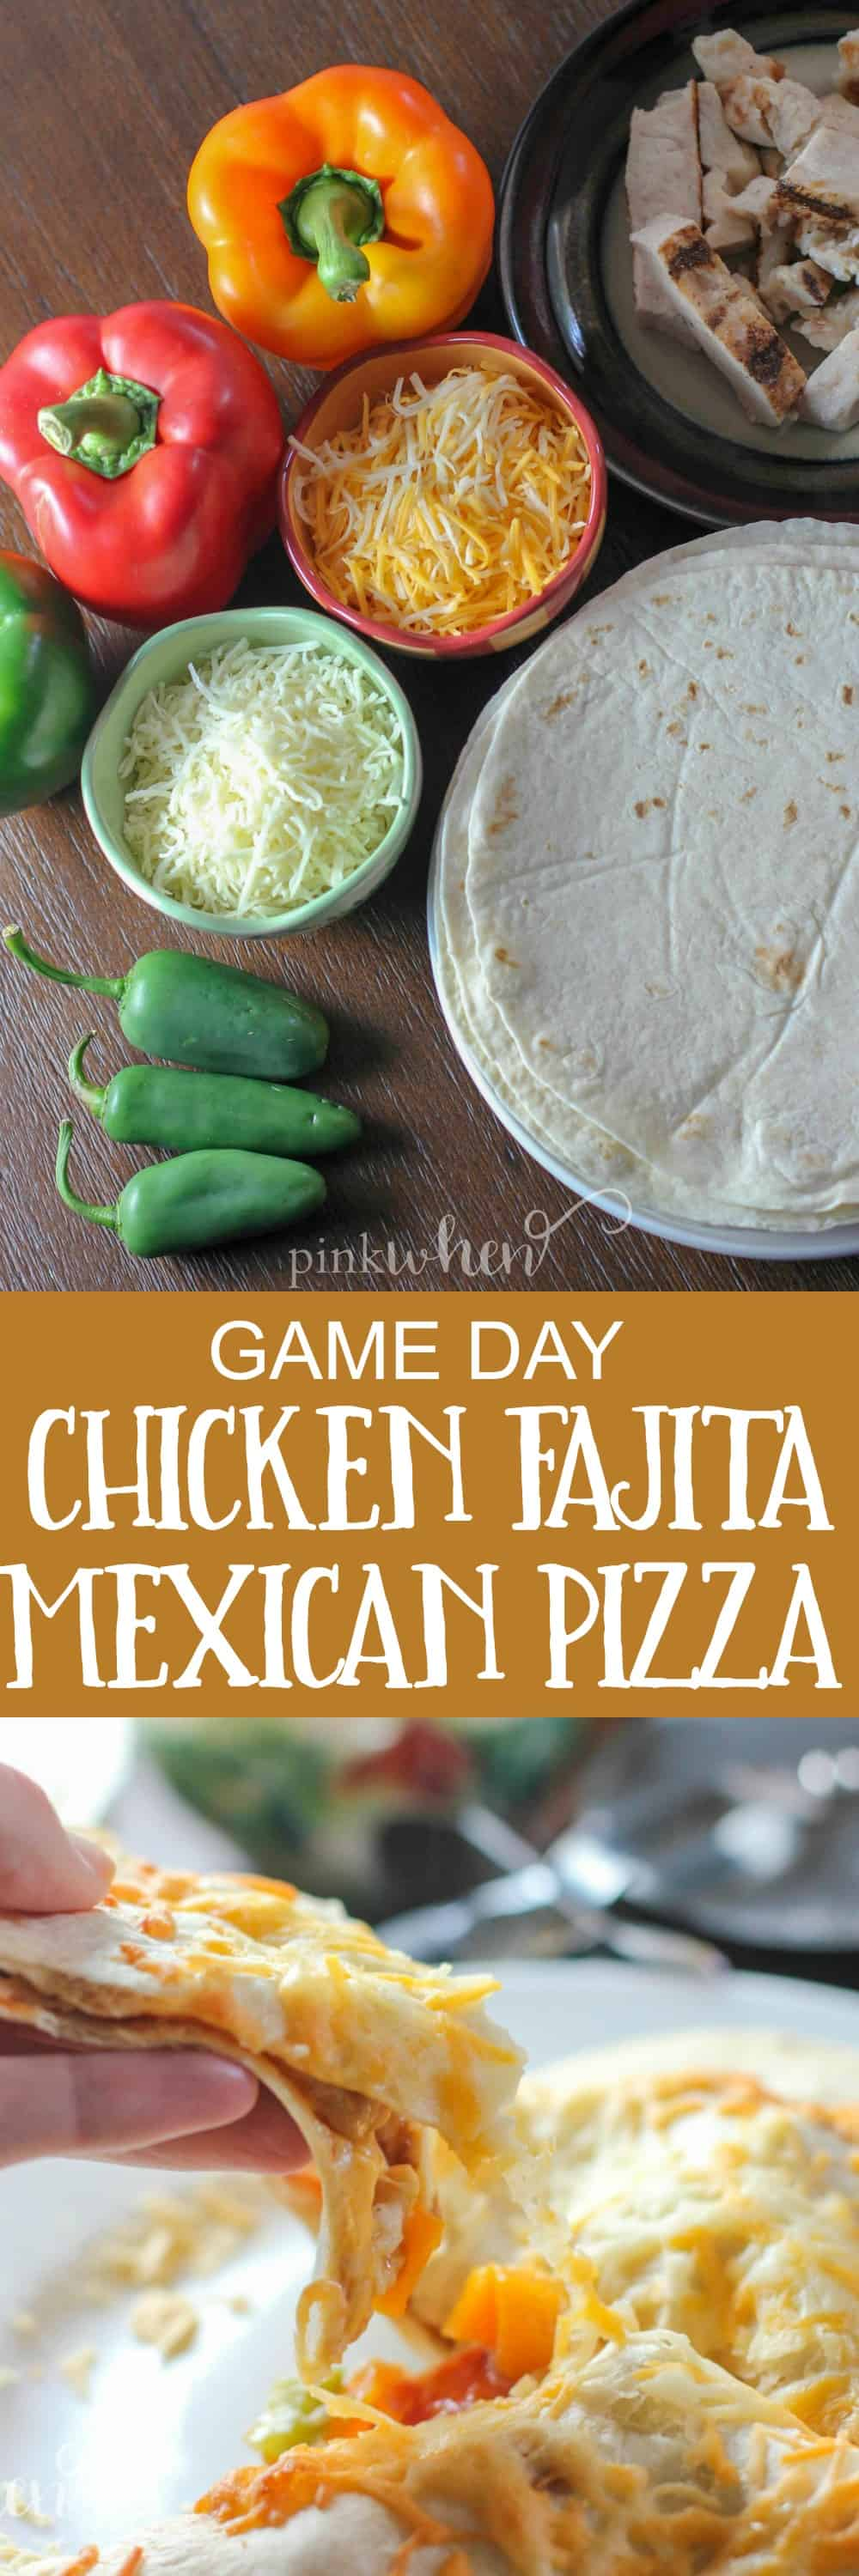 Game Day Chicken Fajita Mexican Pizza Recipe made with fresh ingredients and Mission® Super Soft Flour Tortillas